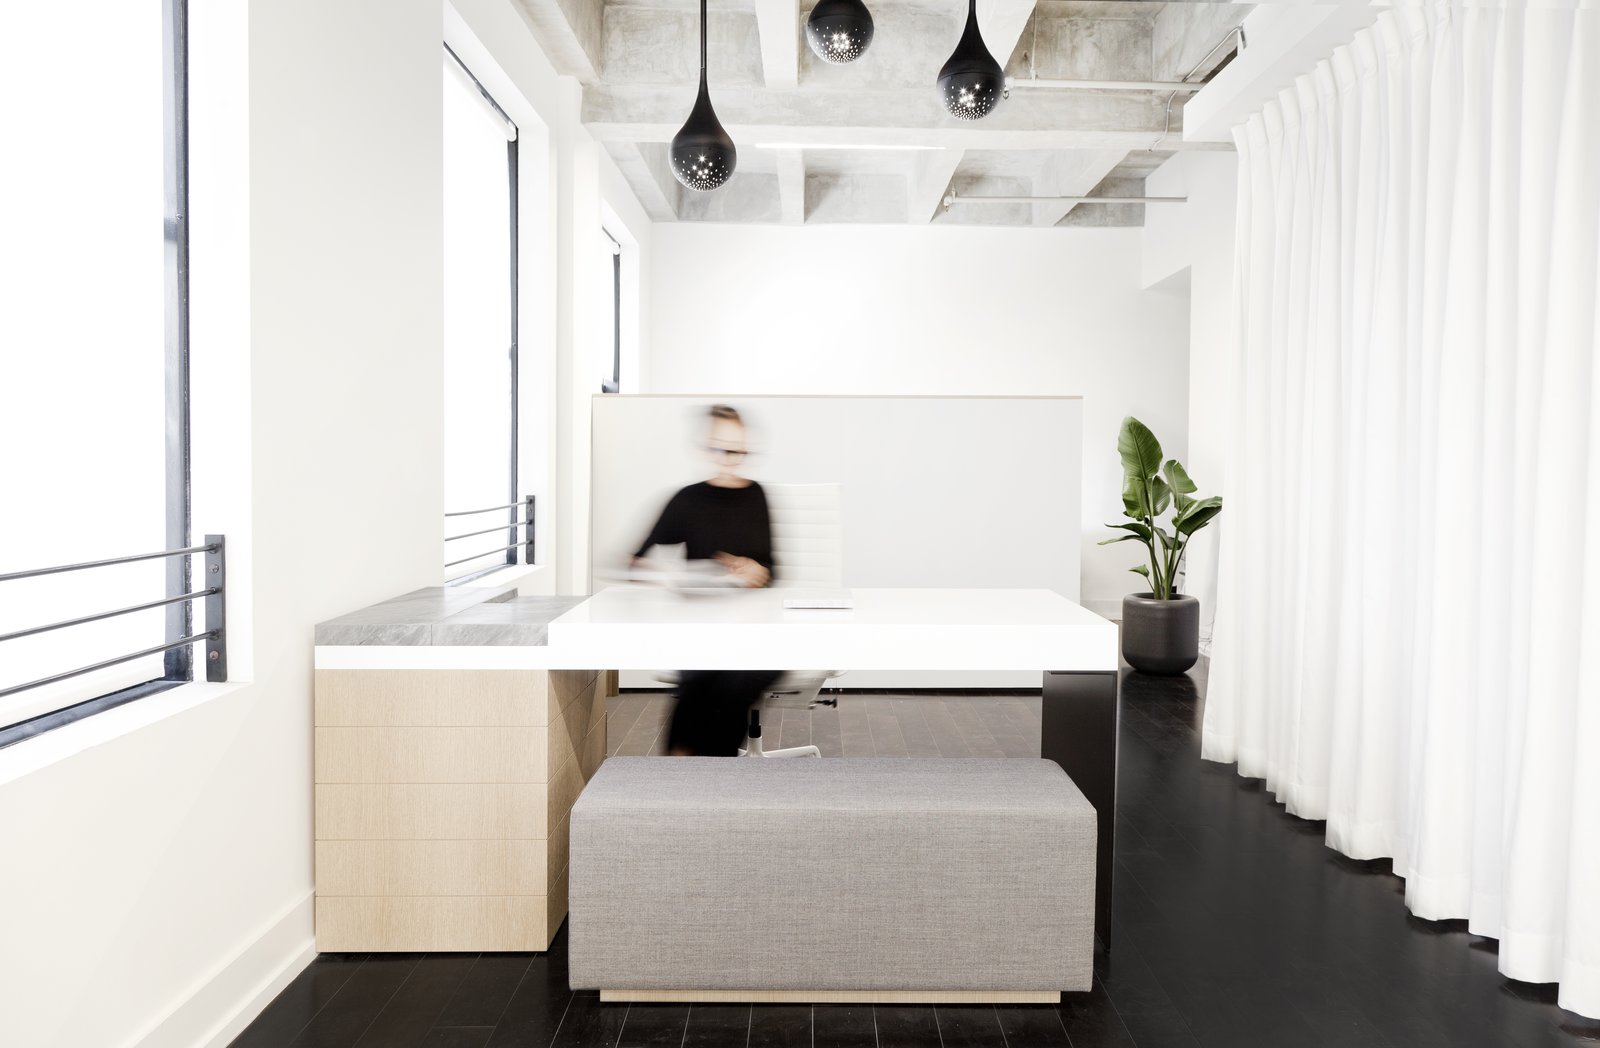 The custom appointment desk was designed and built by using a single bent sheet of aluminum, lacquered MDF, marble, and white oak. The floor-to-ceiling white textured curtain hides a built-in kitchen and brings a softness to the space.  Photo 2 of 10 in This New Jewelry Showroom Celebrates 'Made in L.A.' From Top to Bottom